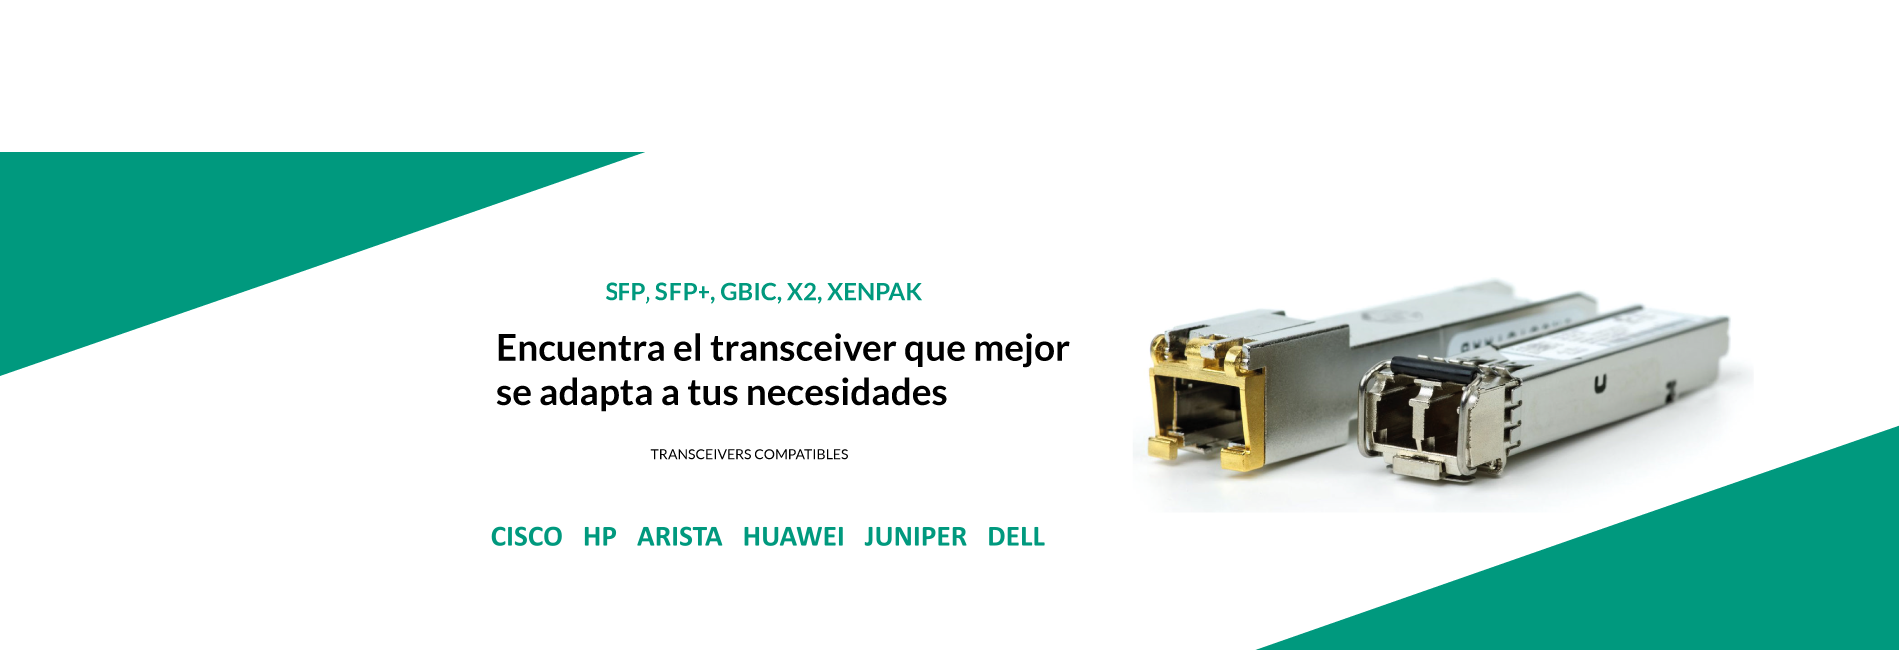 arpers transceivers compatibles